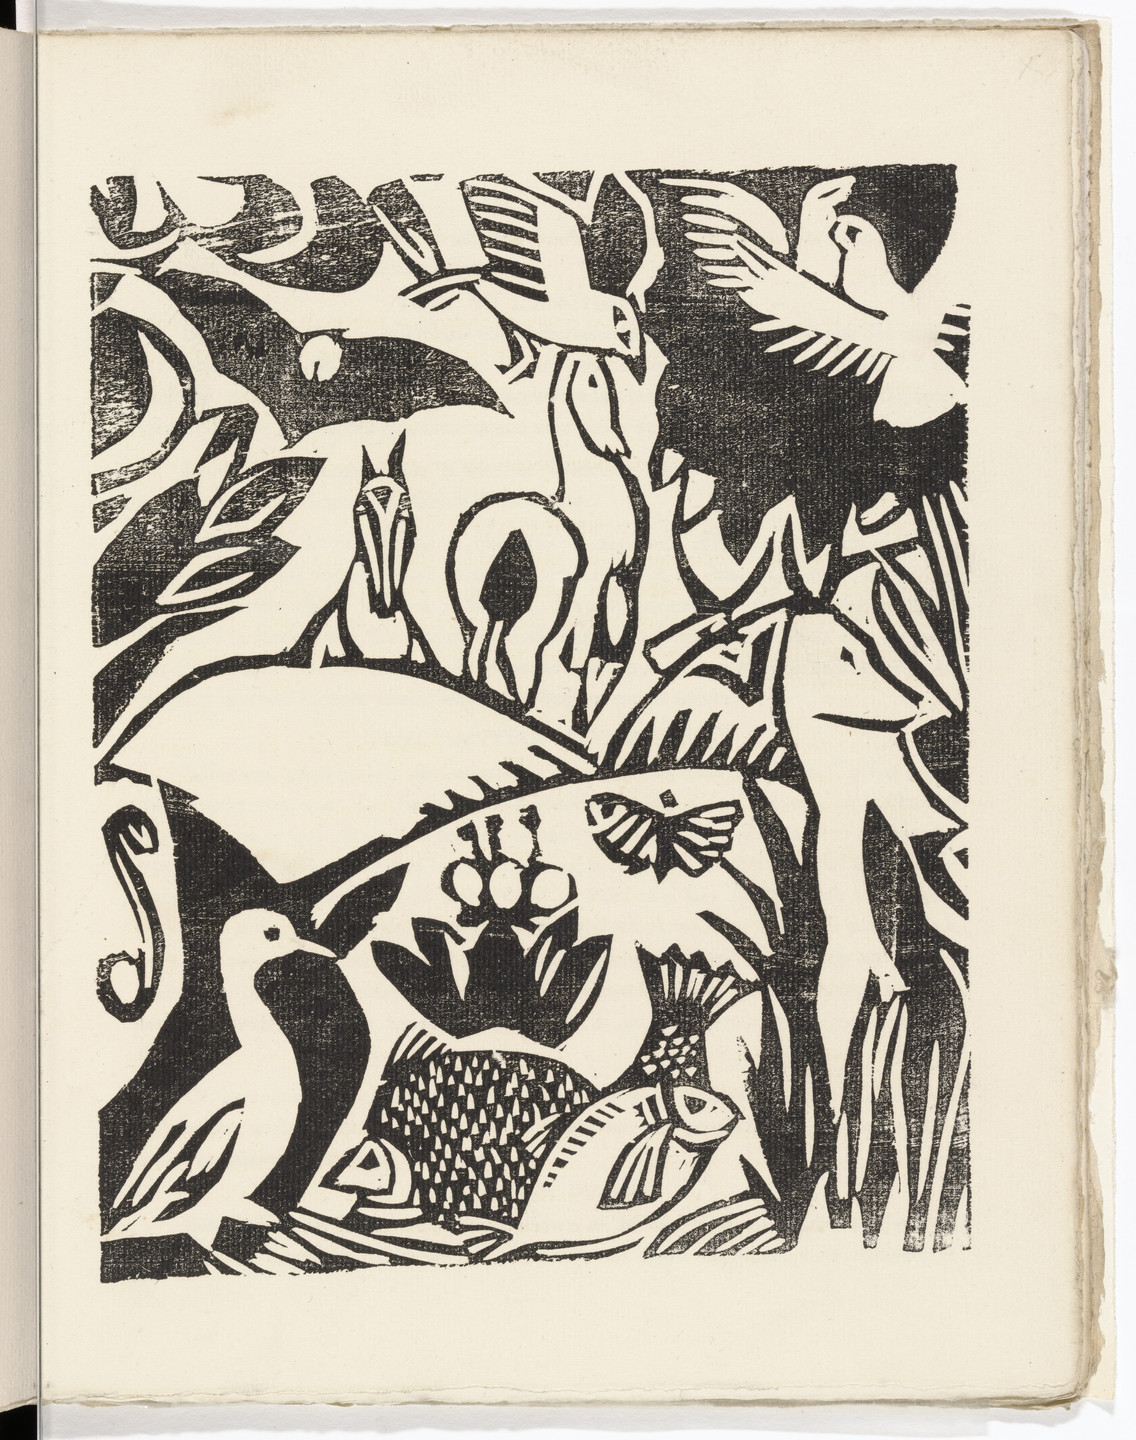 André Derain. Plate (folio 23) from L'Enchanteur pourrissant. 1909